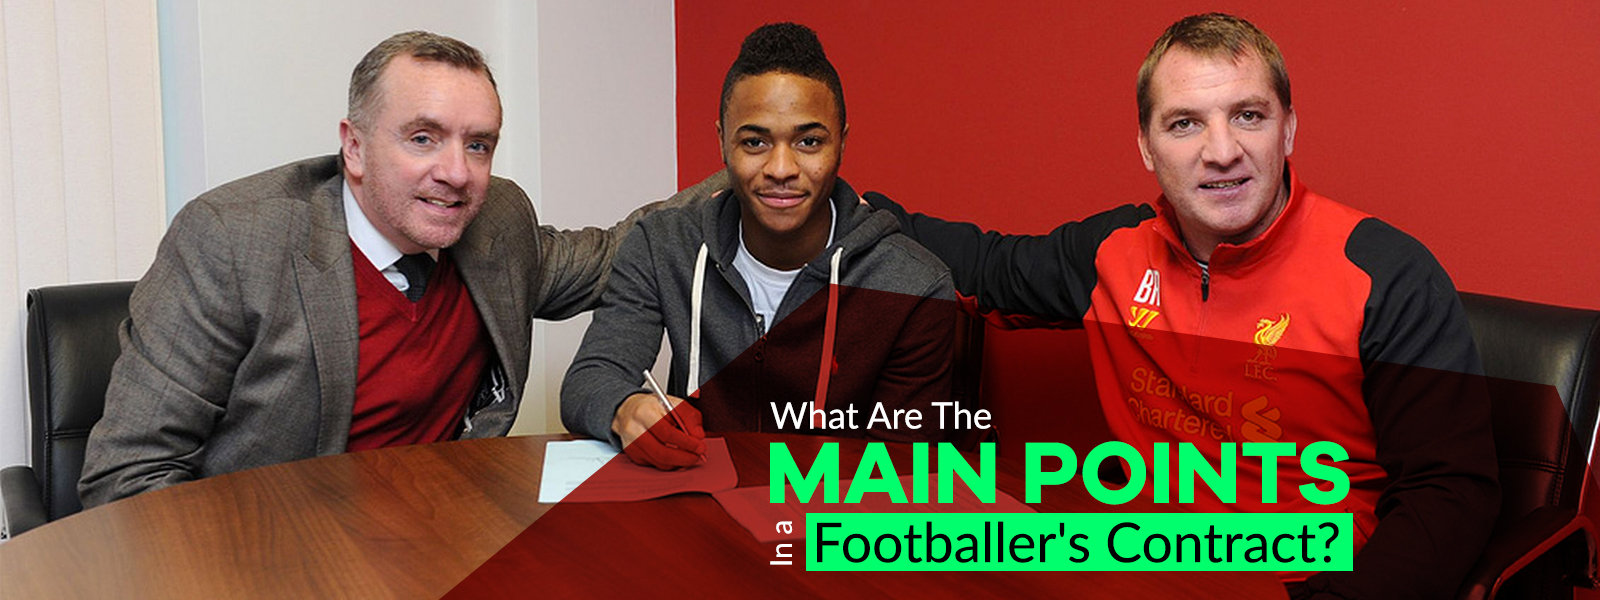 What Are The Main Points In A Footballer Contract?